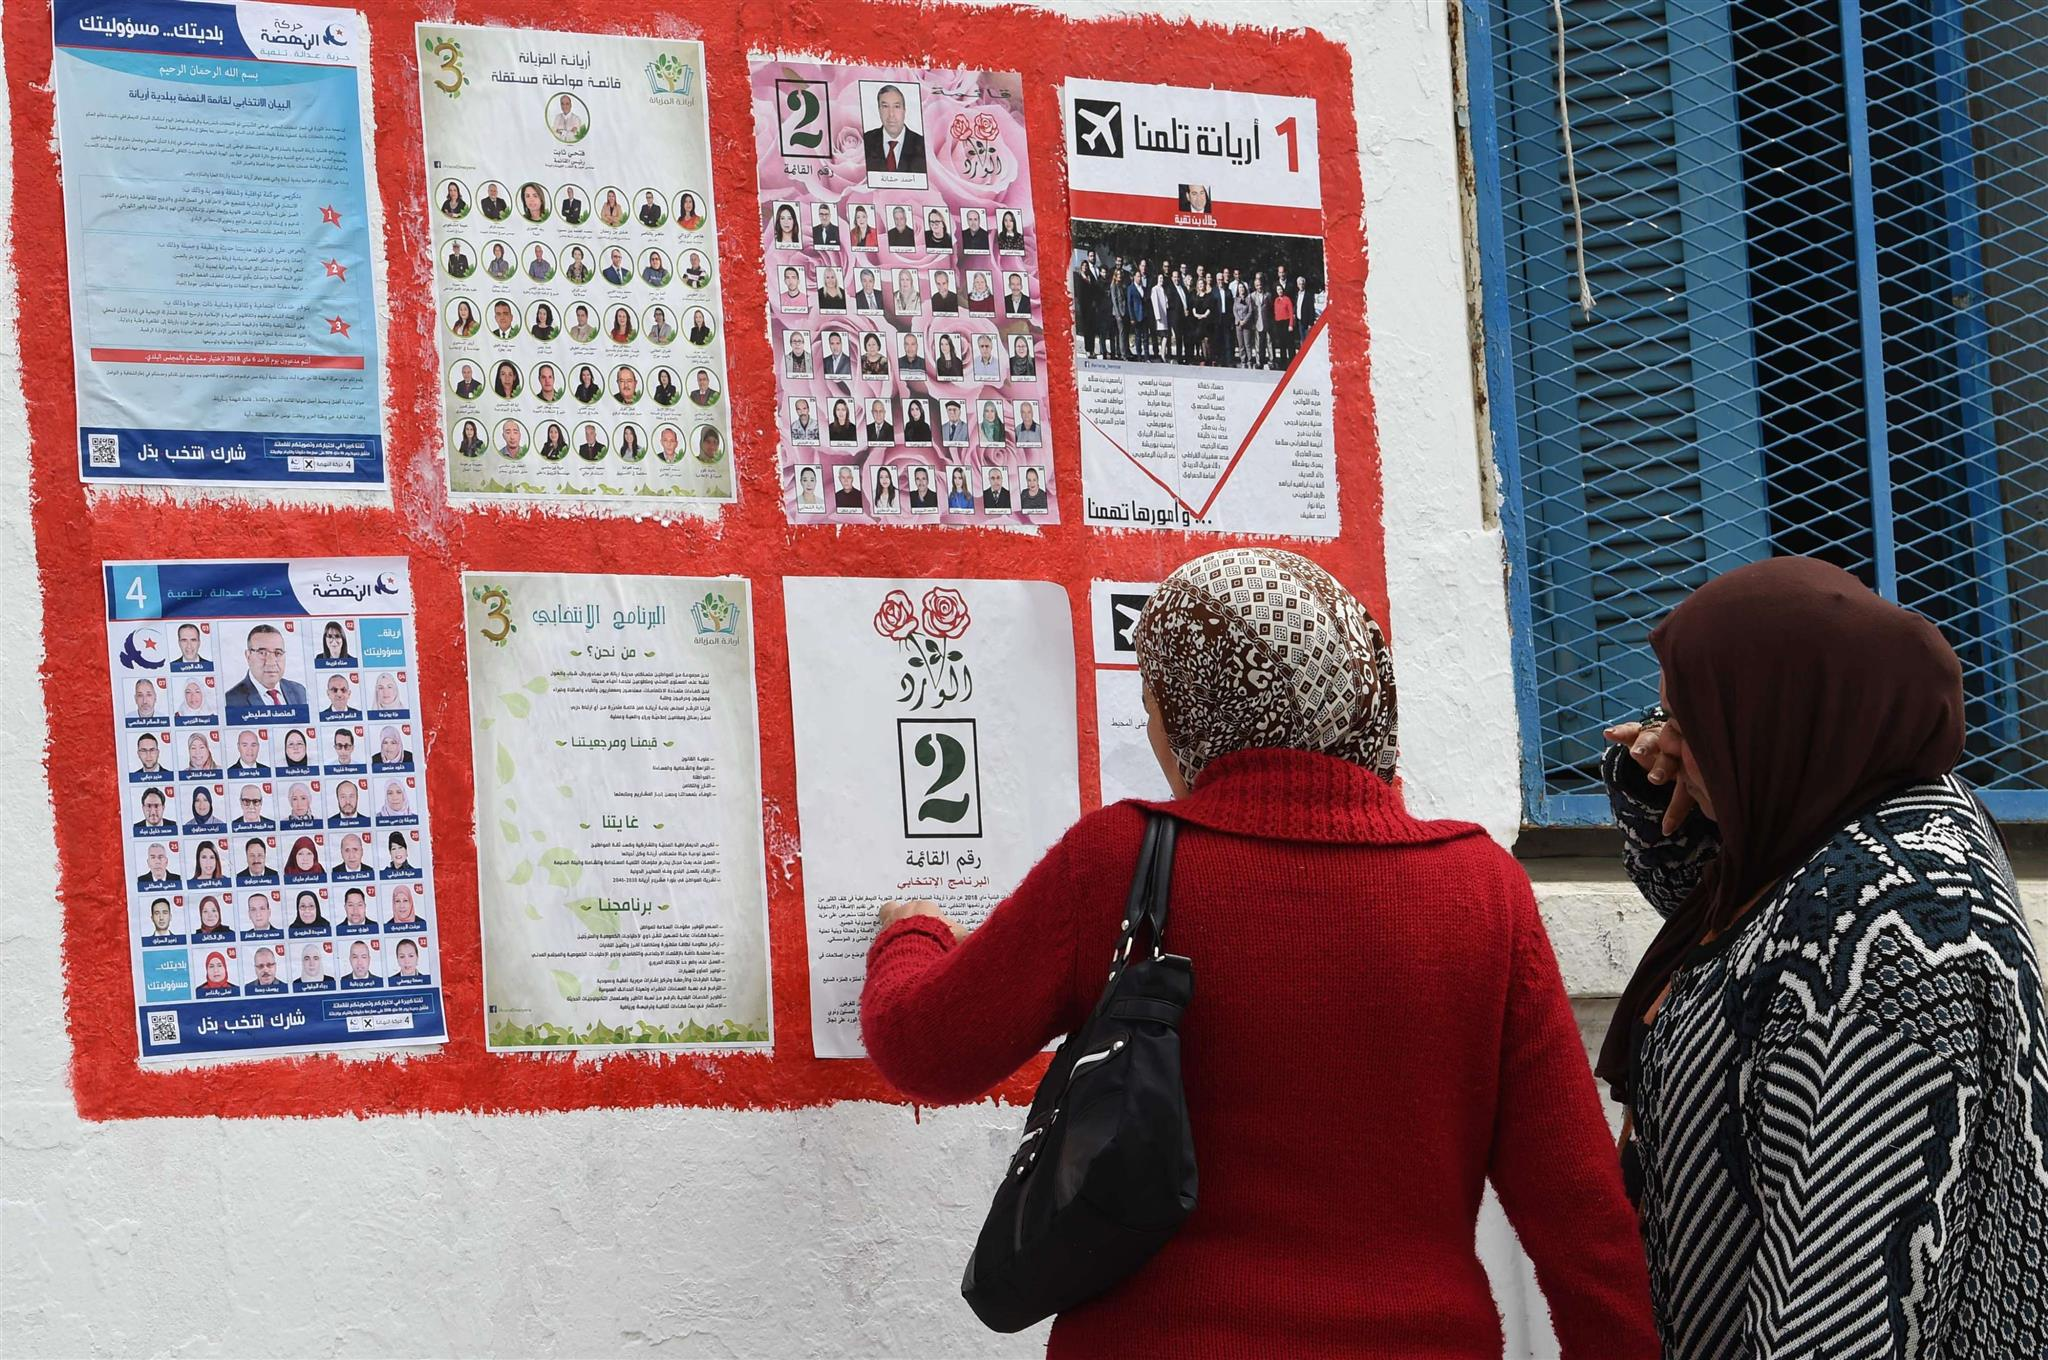 Tunisians look at lists of candidates for the upcoming municipal elections in the city of Ariana, on April 14. (AFP)